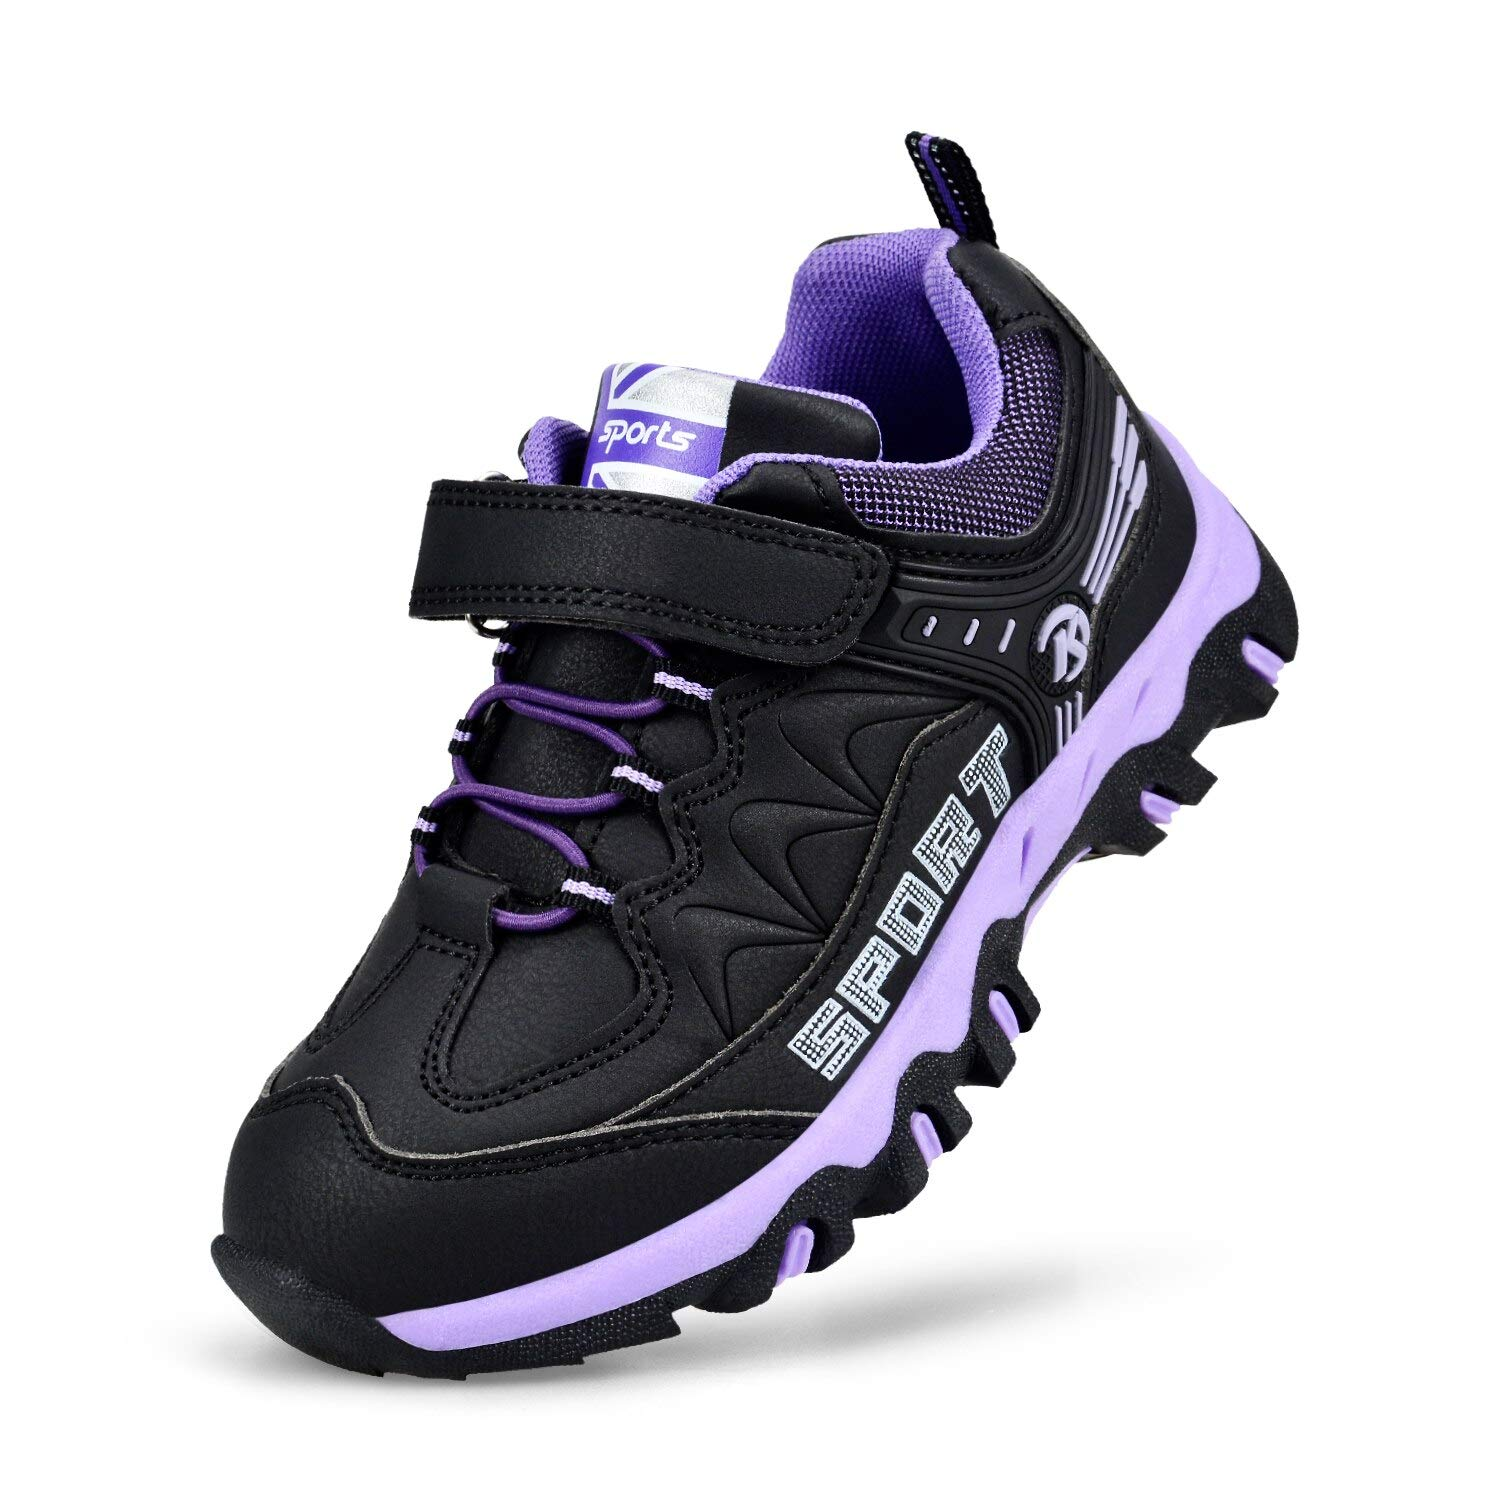 MARSVOVO Boy's Sneakers Breathable Outdoor Tennis Hiking Running Shoes Black/Purple 8.5 Toddler